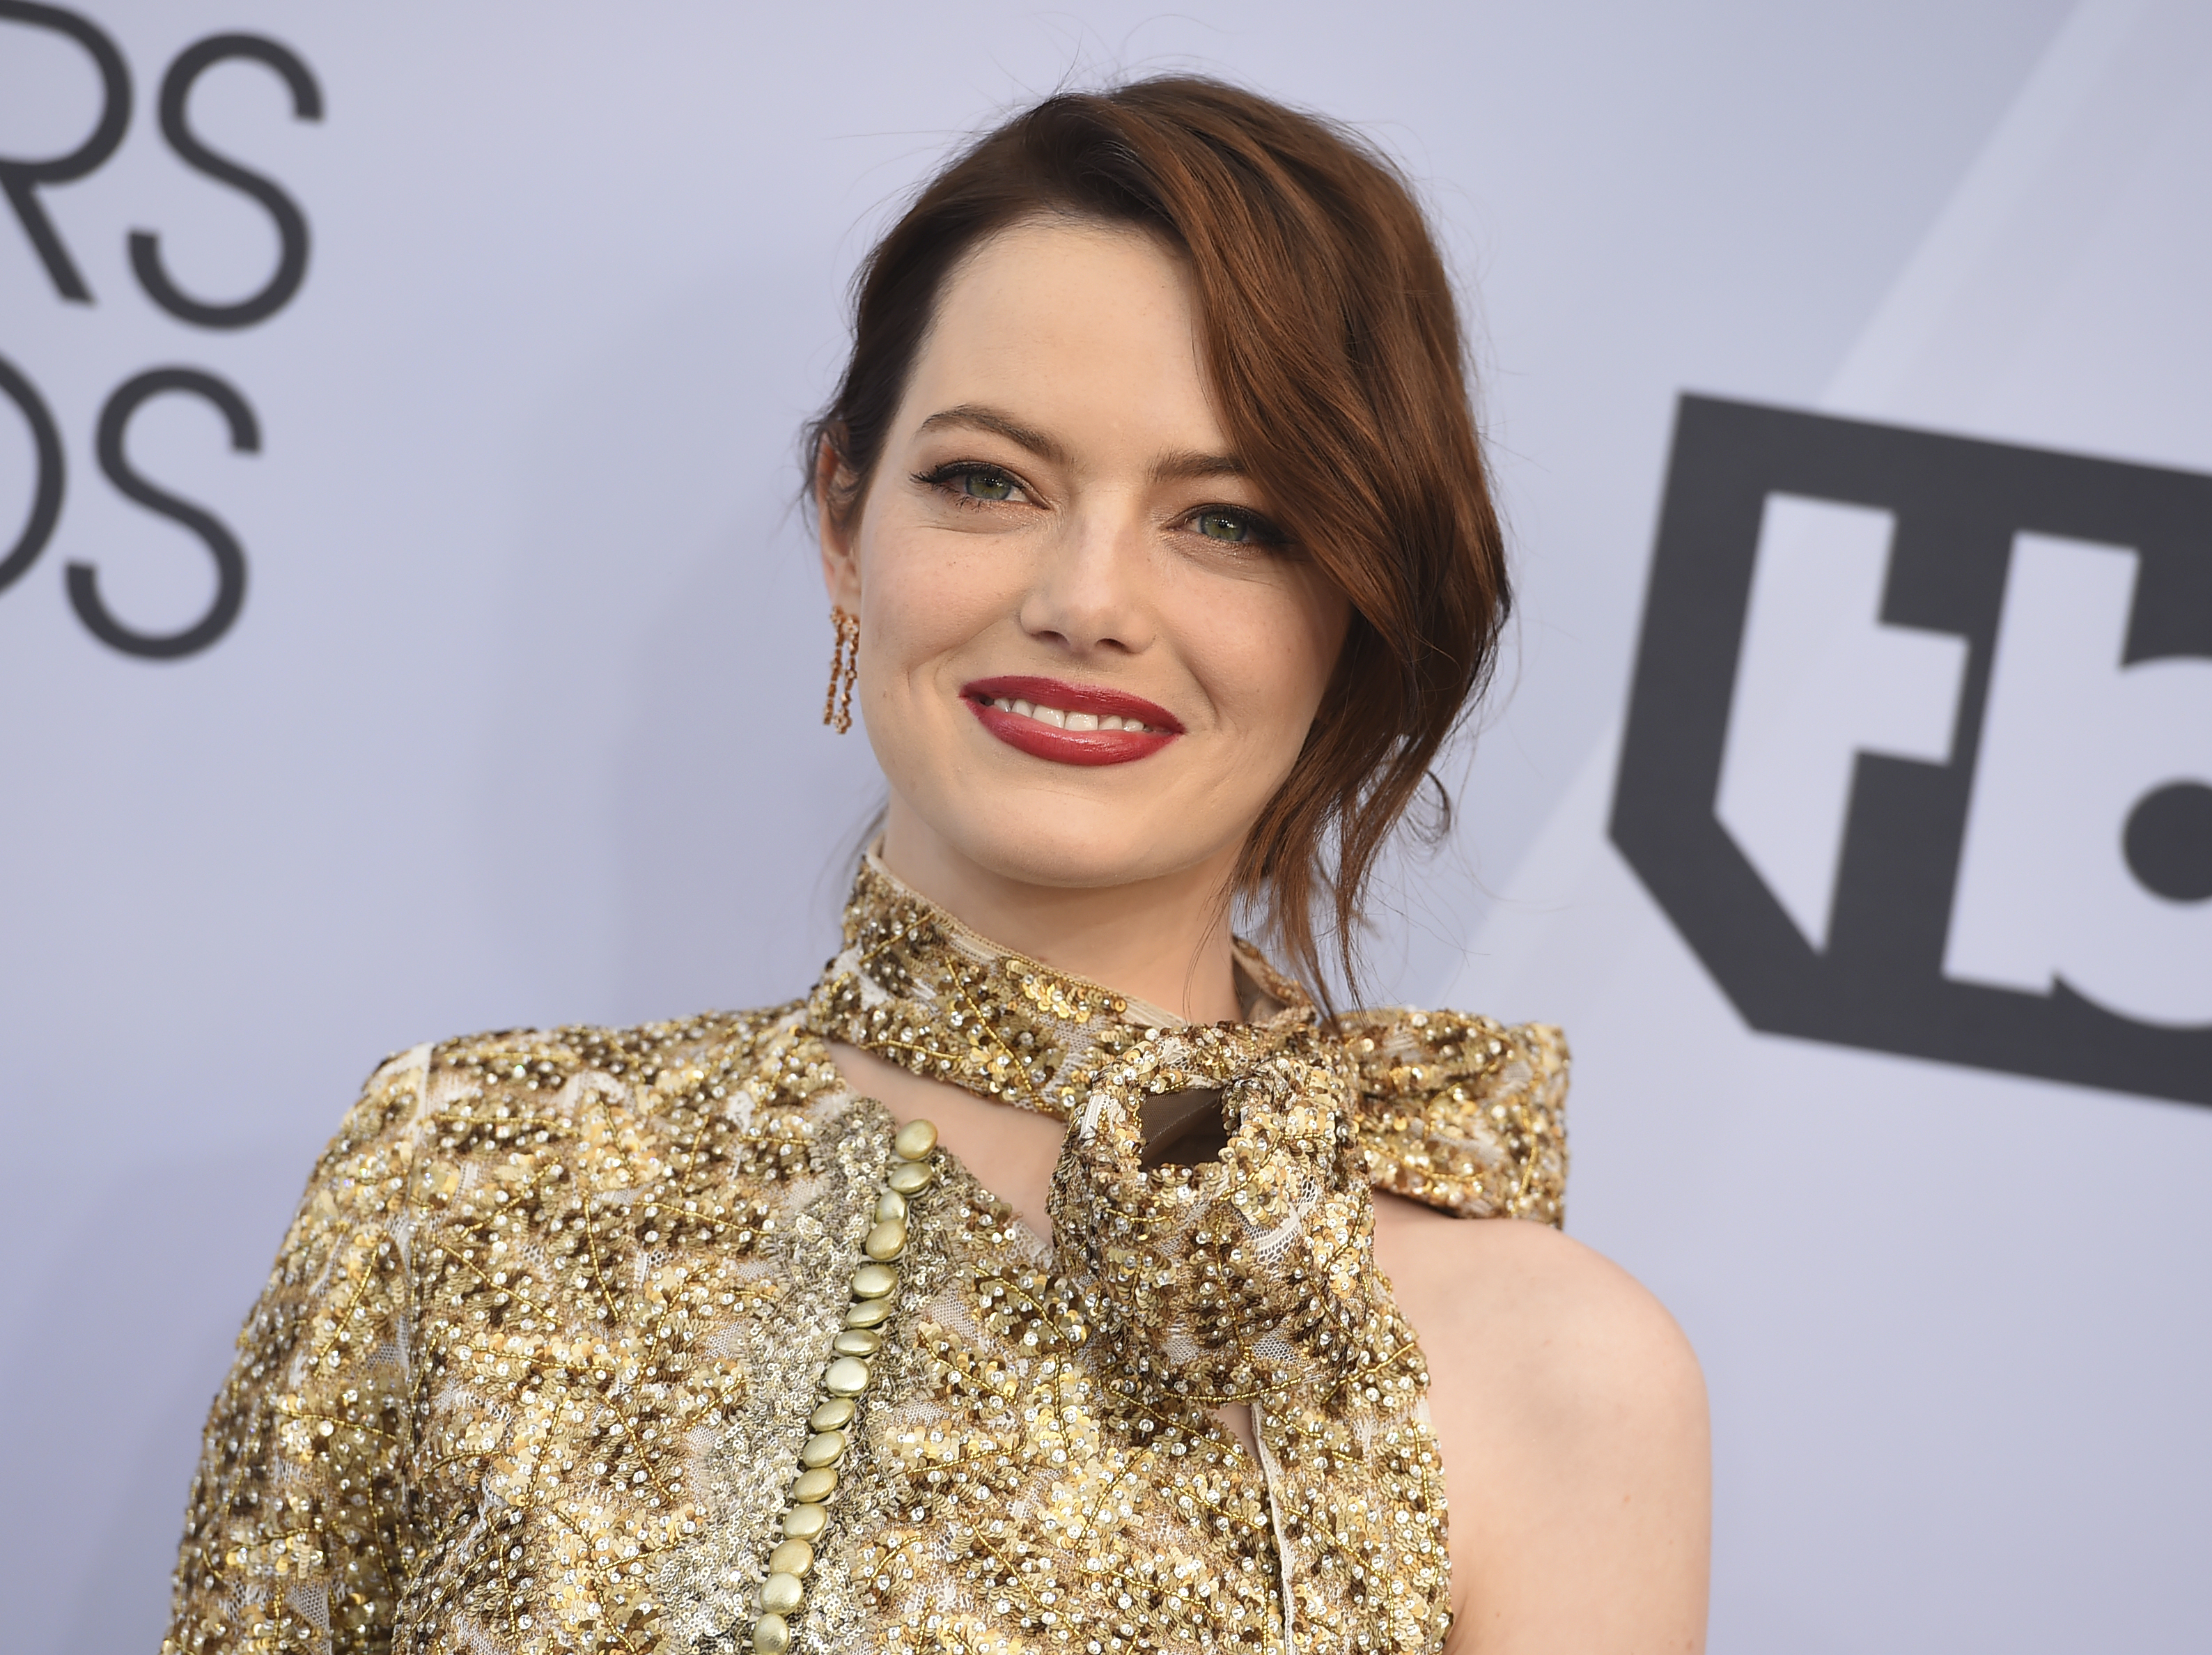 Emma Stone arrives at the 25th annual Screen Actors Guild Awards at the Shrine Auditorium & Expo Hall on Sunday, Jan. 27, 2019, in Los Angeles. (Photo by Jordan Strauss/Invision/AP)